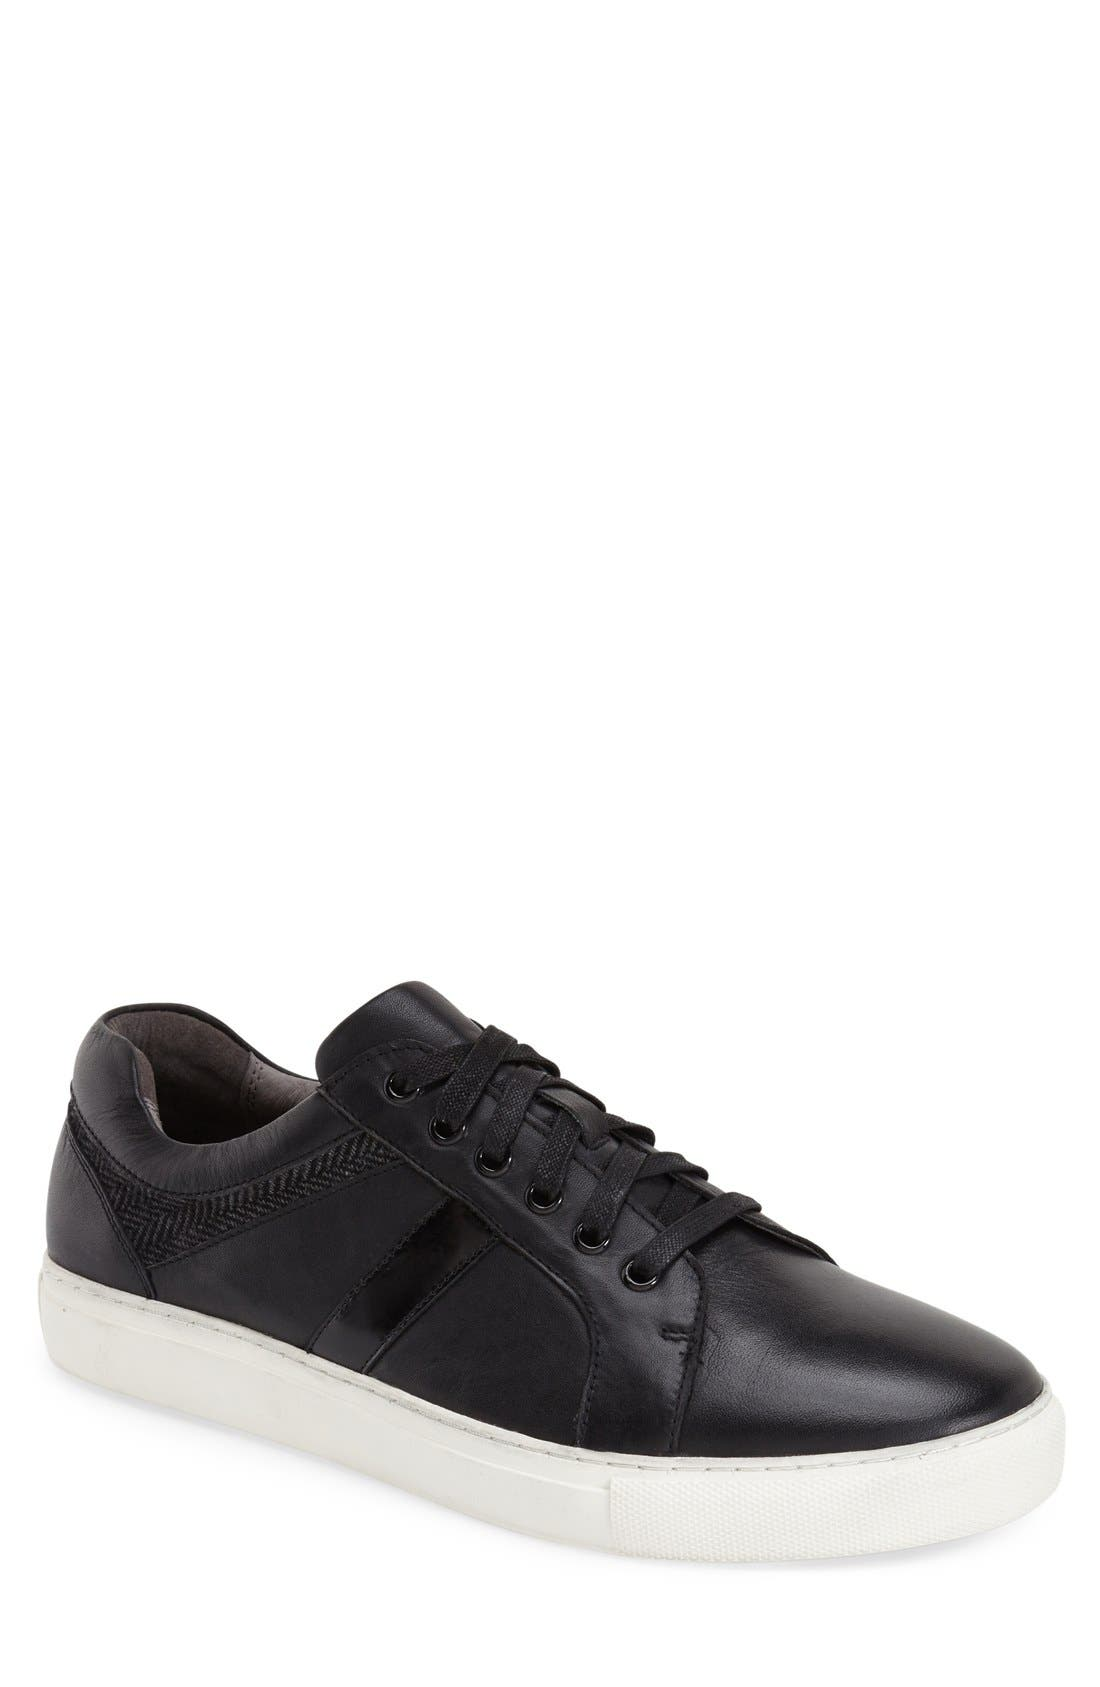 'Mixer' Sneaker,                         Main,                         color, 001